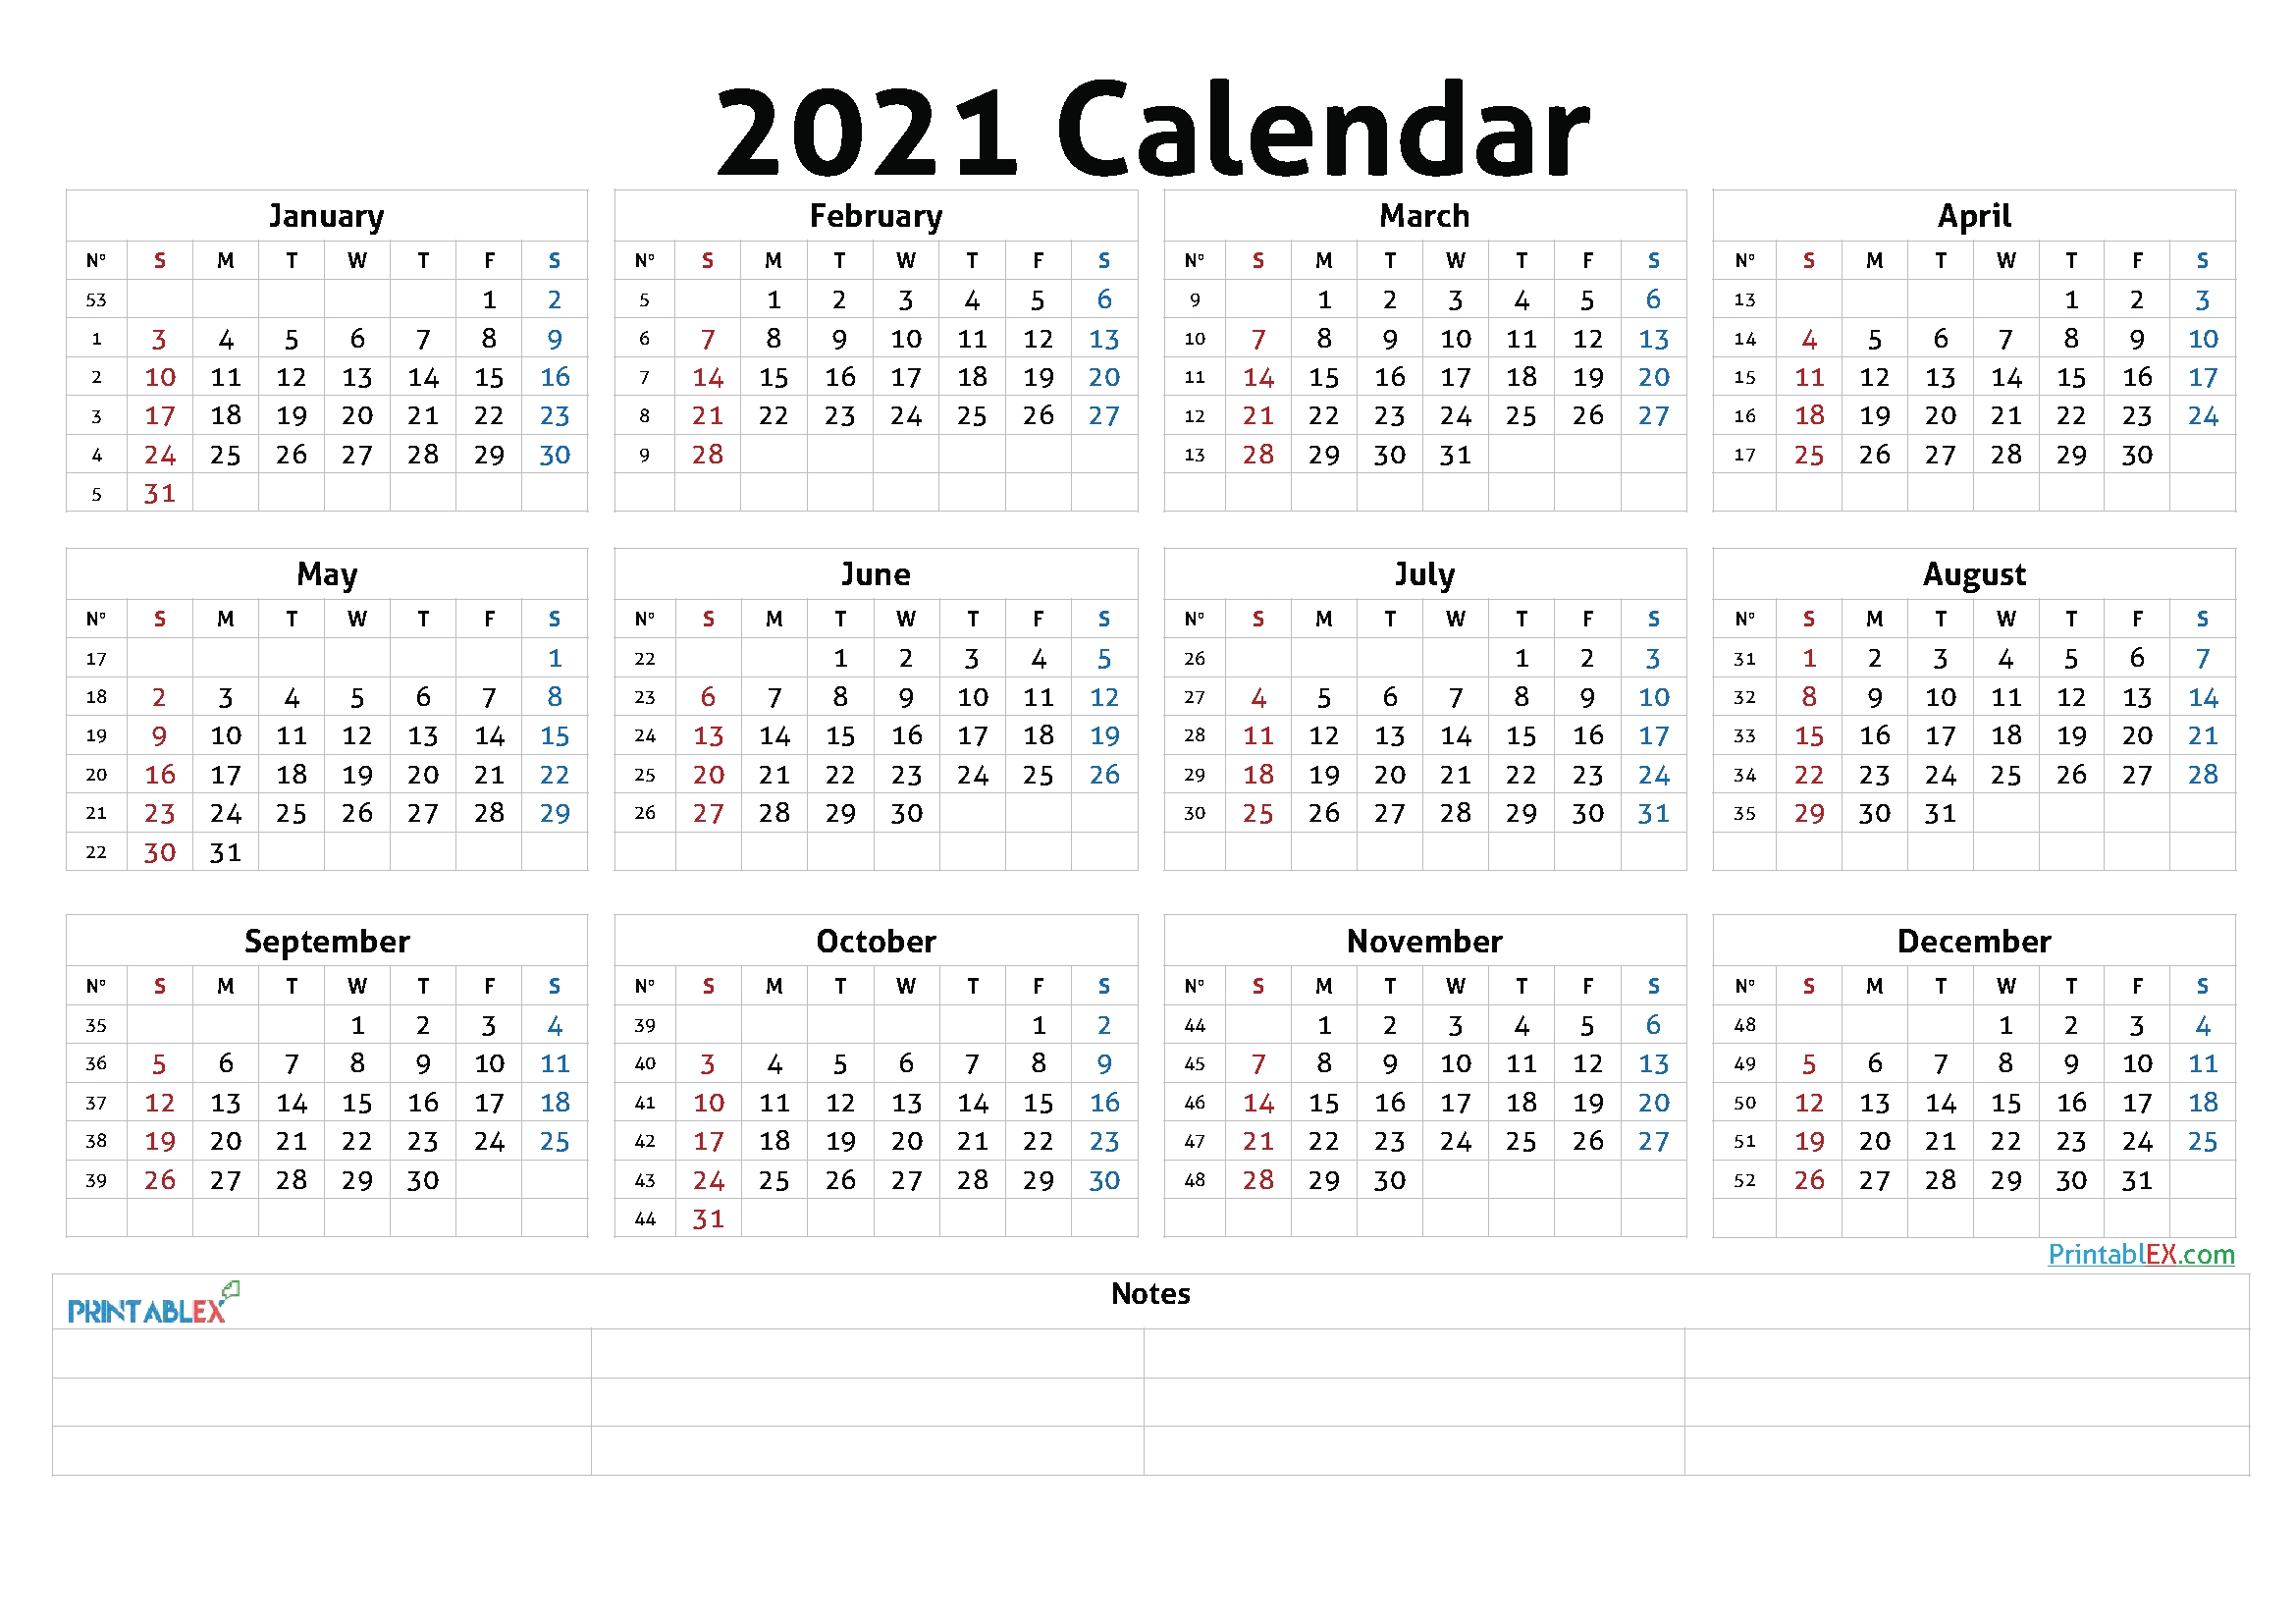 Free 2021 Yearly Calender Template : 2021 Yearly Calendar Template Vertical Design Free pertaining to Free Printable Calendarlabs 2021 Graphics